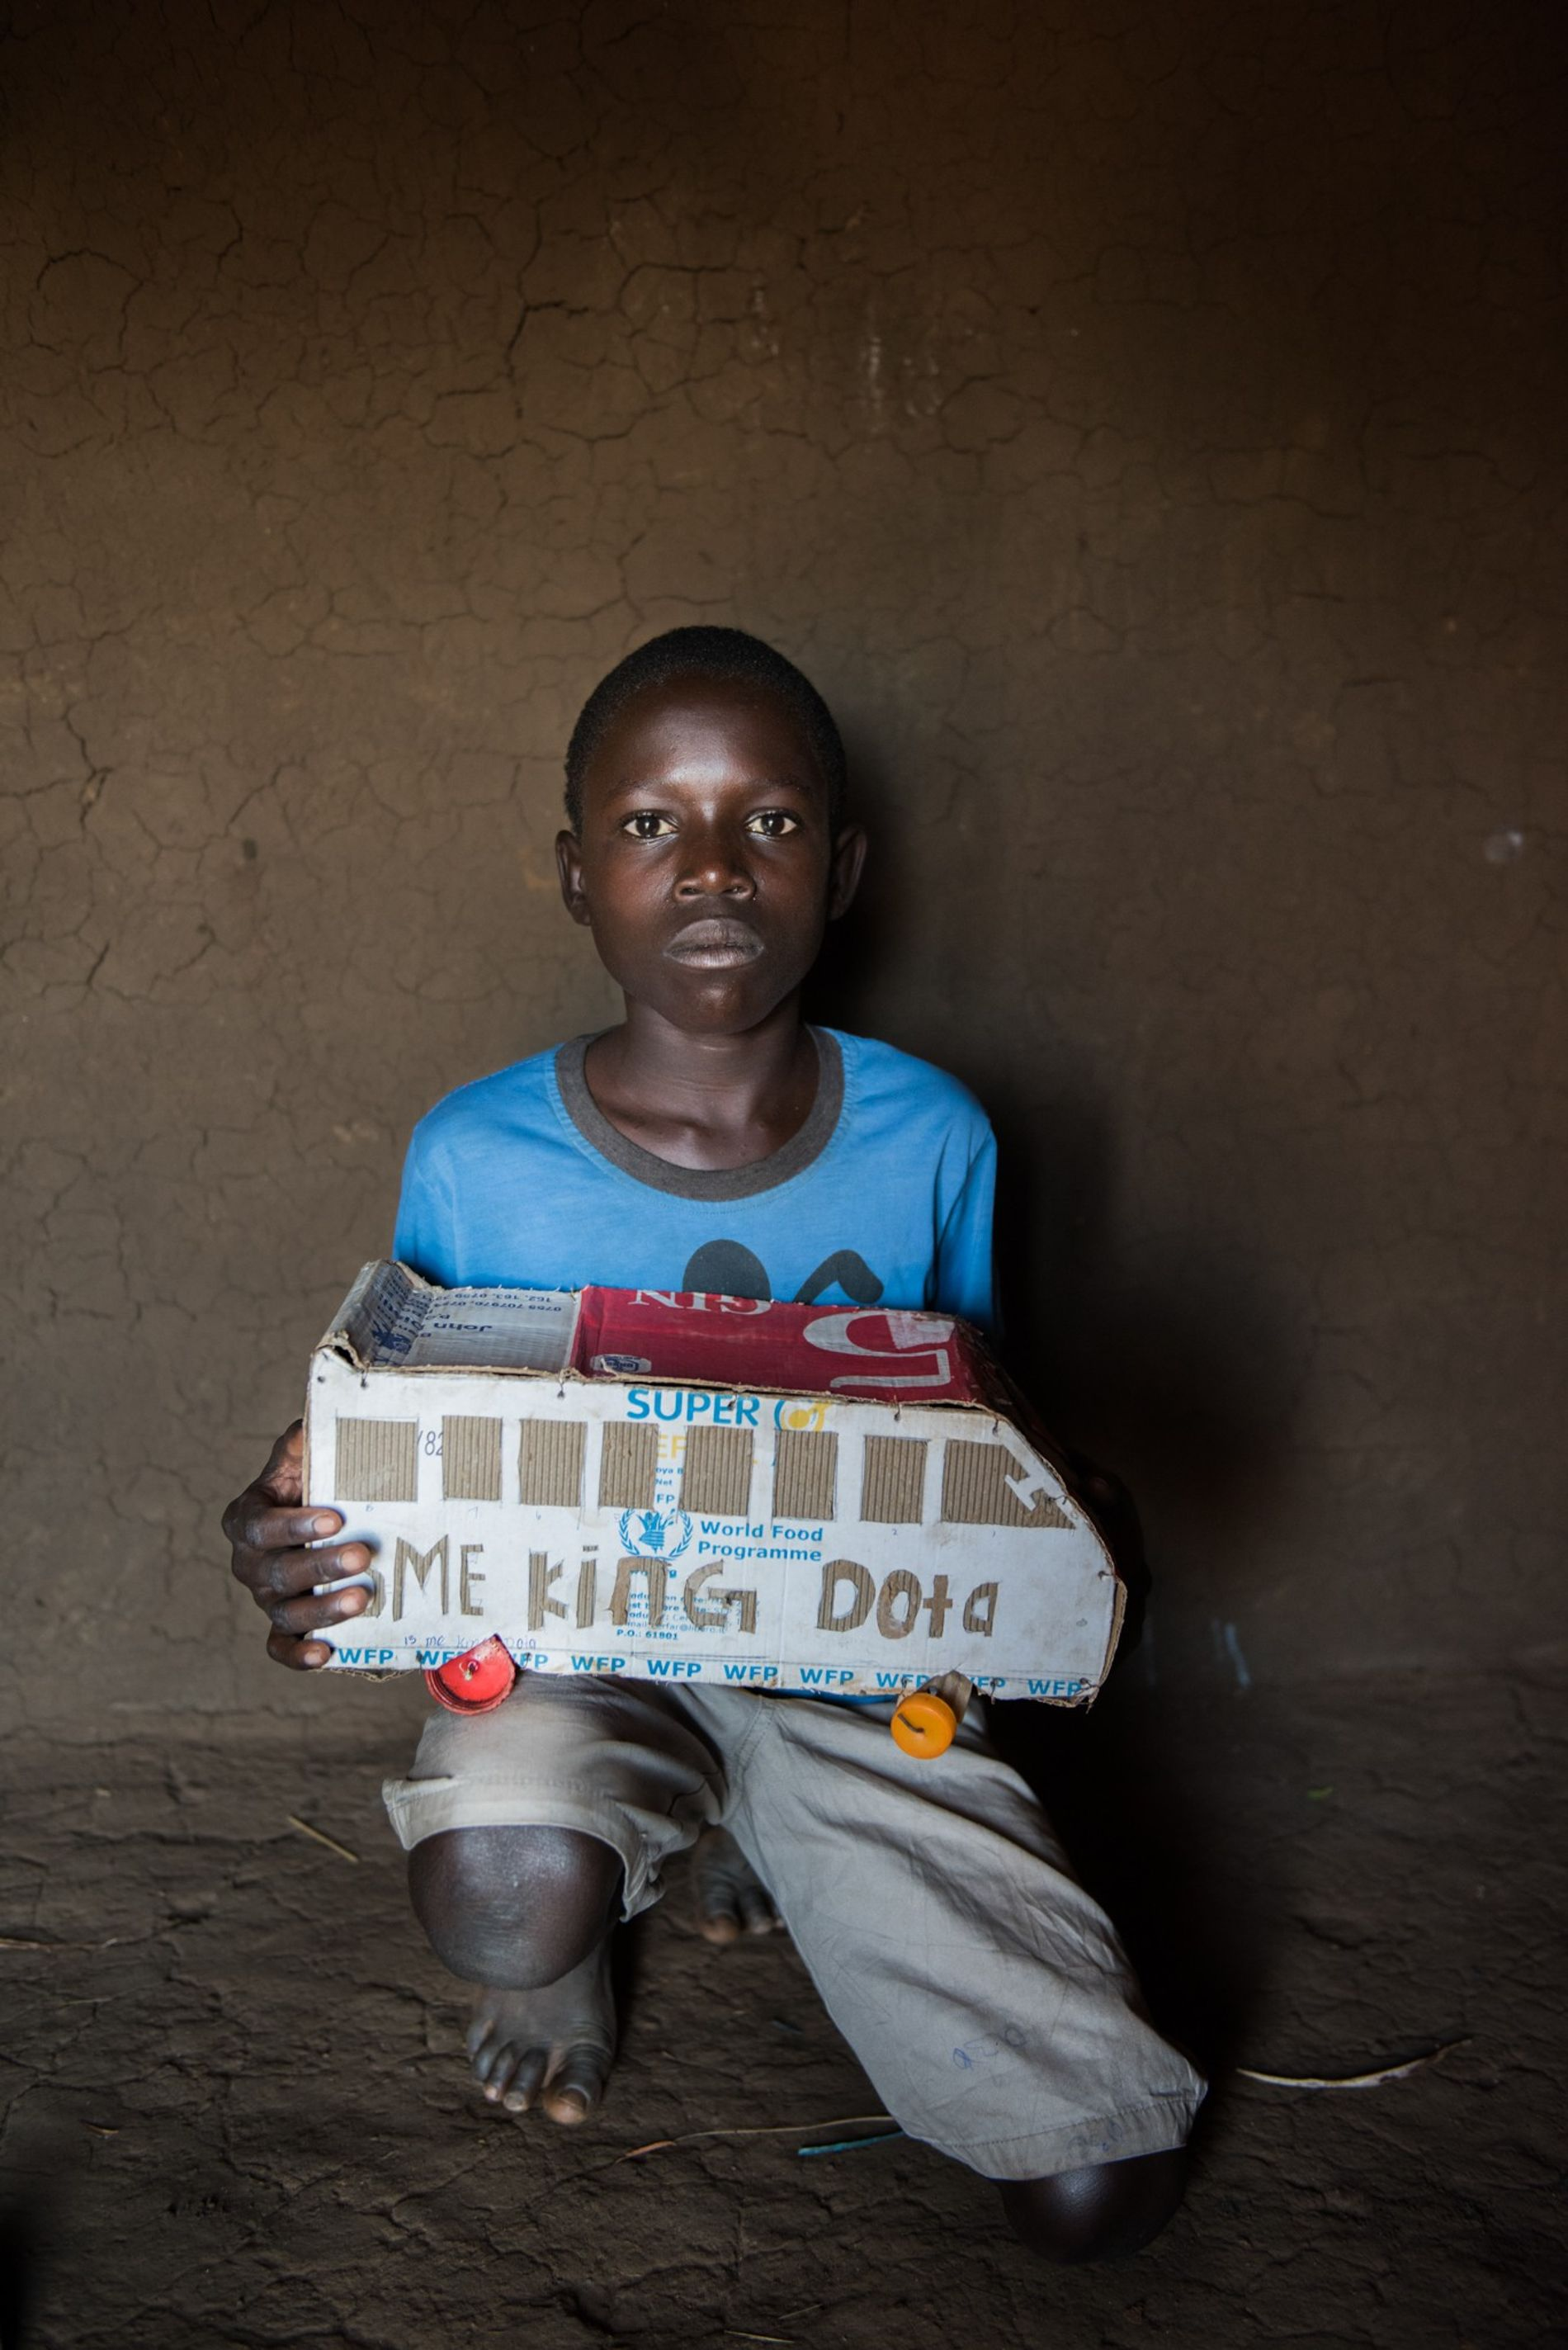 Isaac Lemi, a 13-year-old refugee from South Sudan living in Uganda, holds a toy bus he made out of a box from the World Food Program. Toys are scarce in Bidibidi, so children entertain themselves with handmade creations.